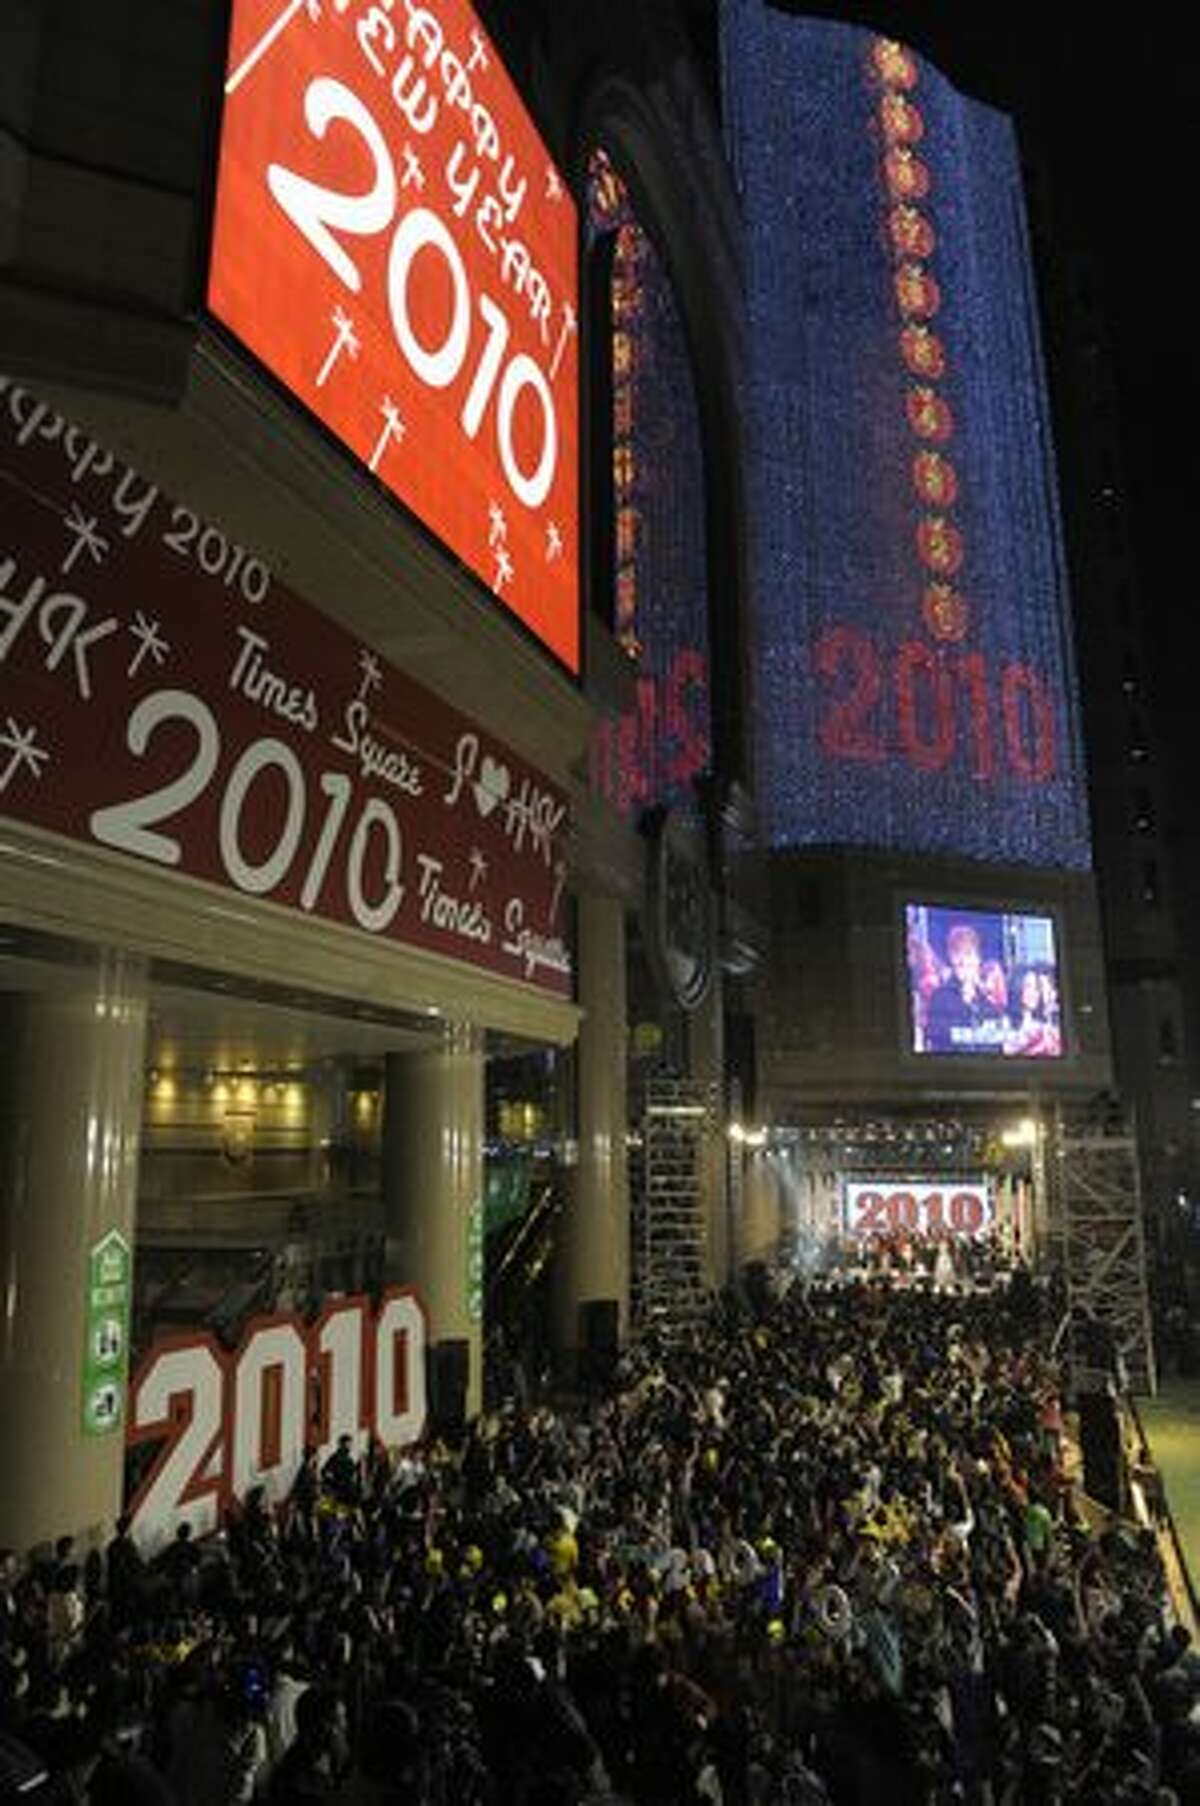 People celebrate the incoming new year outside a shopping mall in Hong Kong.